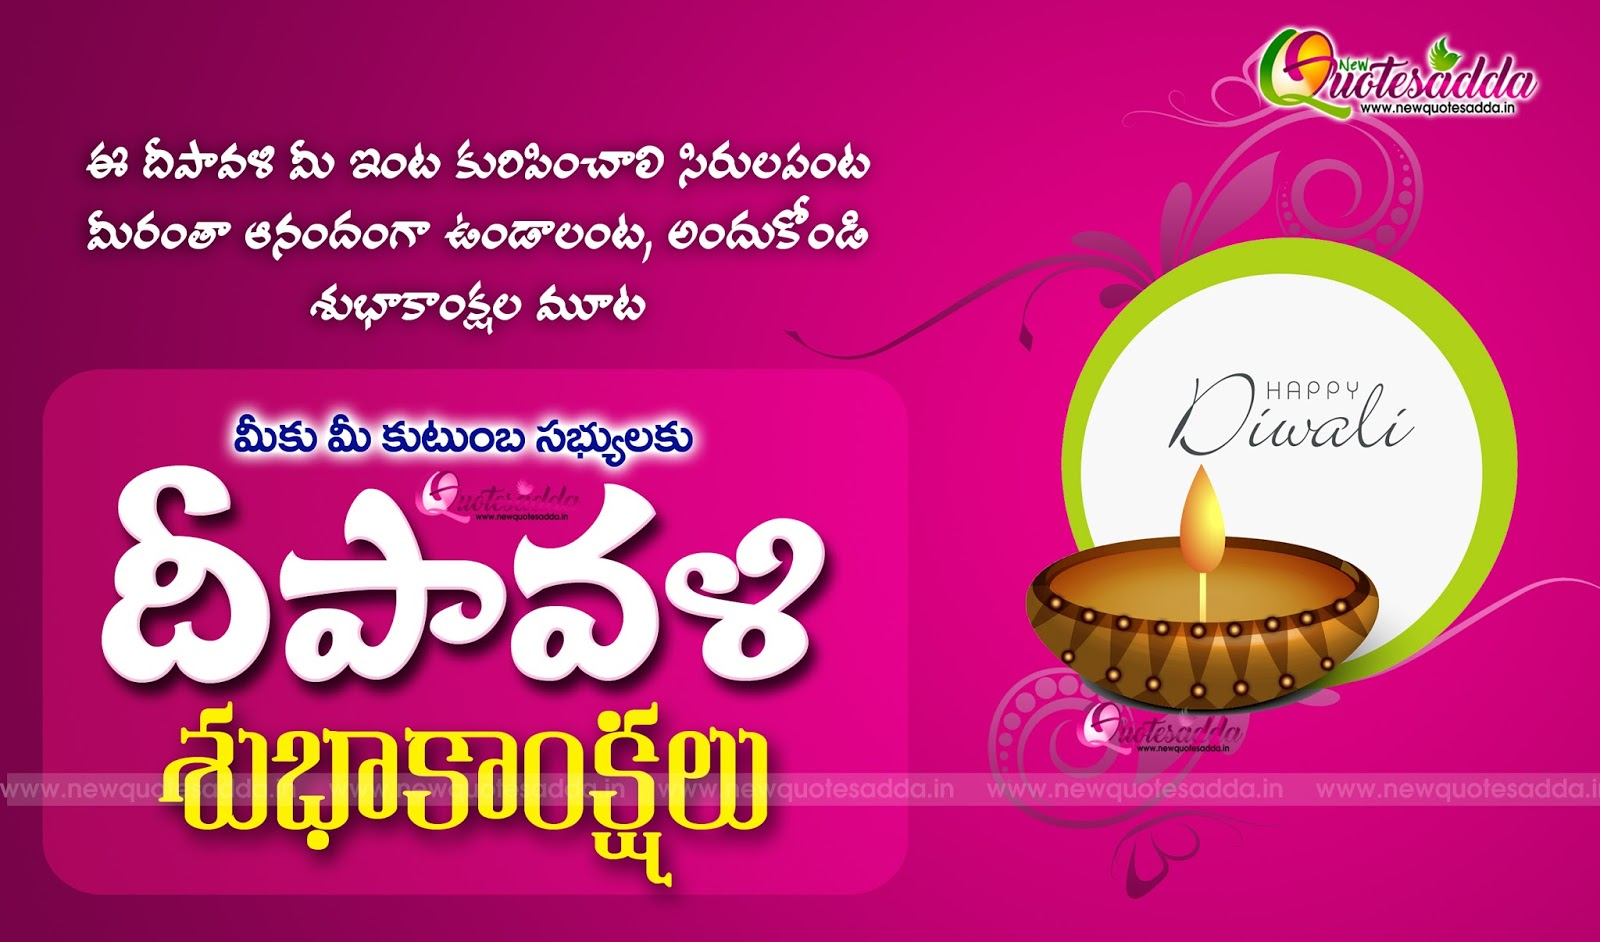 New Inspiring Safe Diwali Wishes And Telugu Quotes For Whatsapp